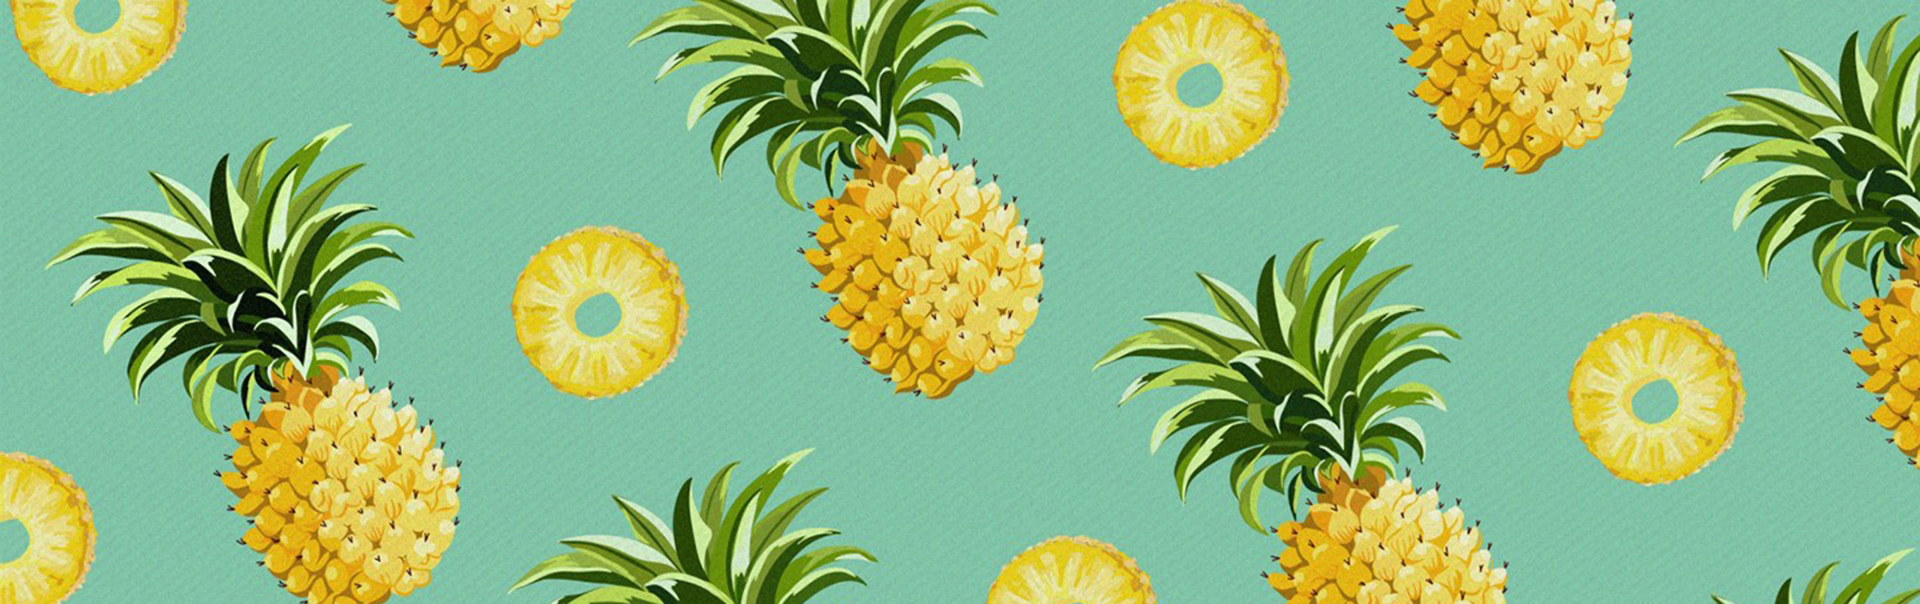 Cute Ribbons Wallpaper Pineapple Pattern Background Fruits Cartoon Pineapple